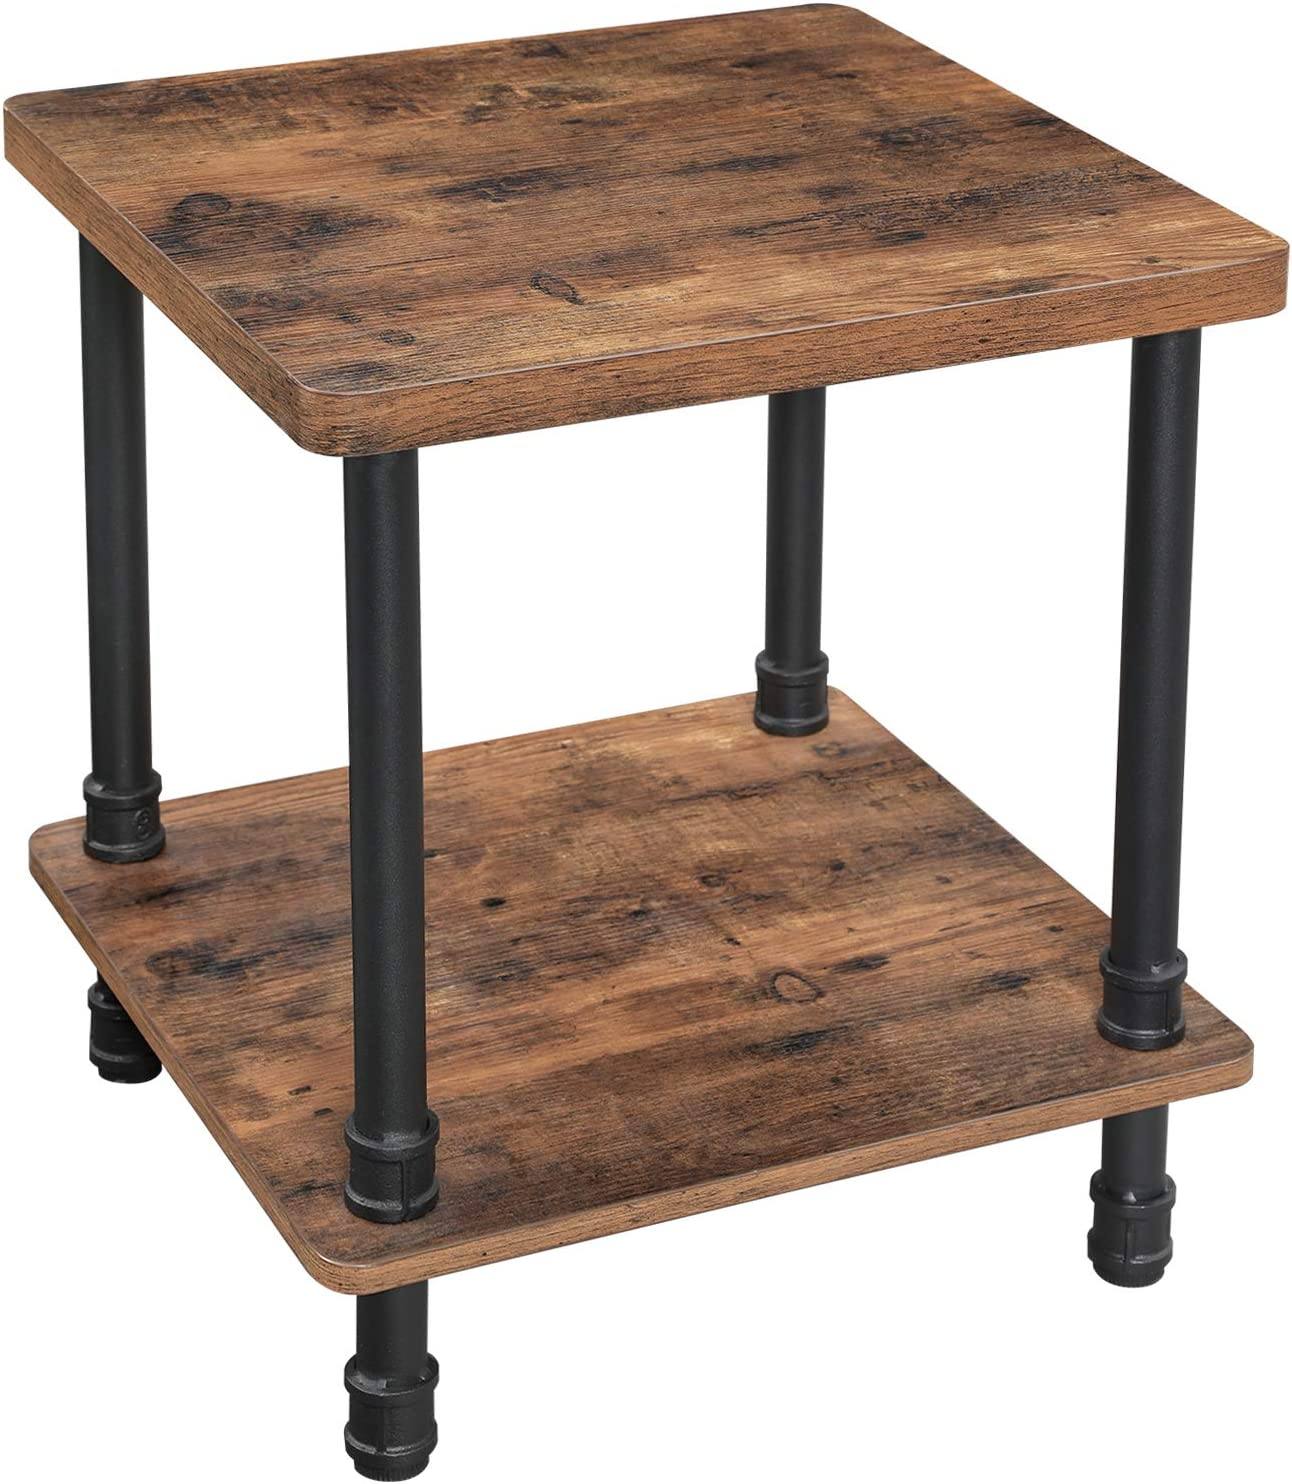 - Amazon.com: VASAGLE URBENCE Side Table, End Table With 1.2 Inch